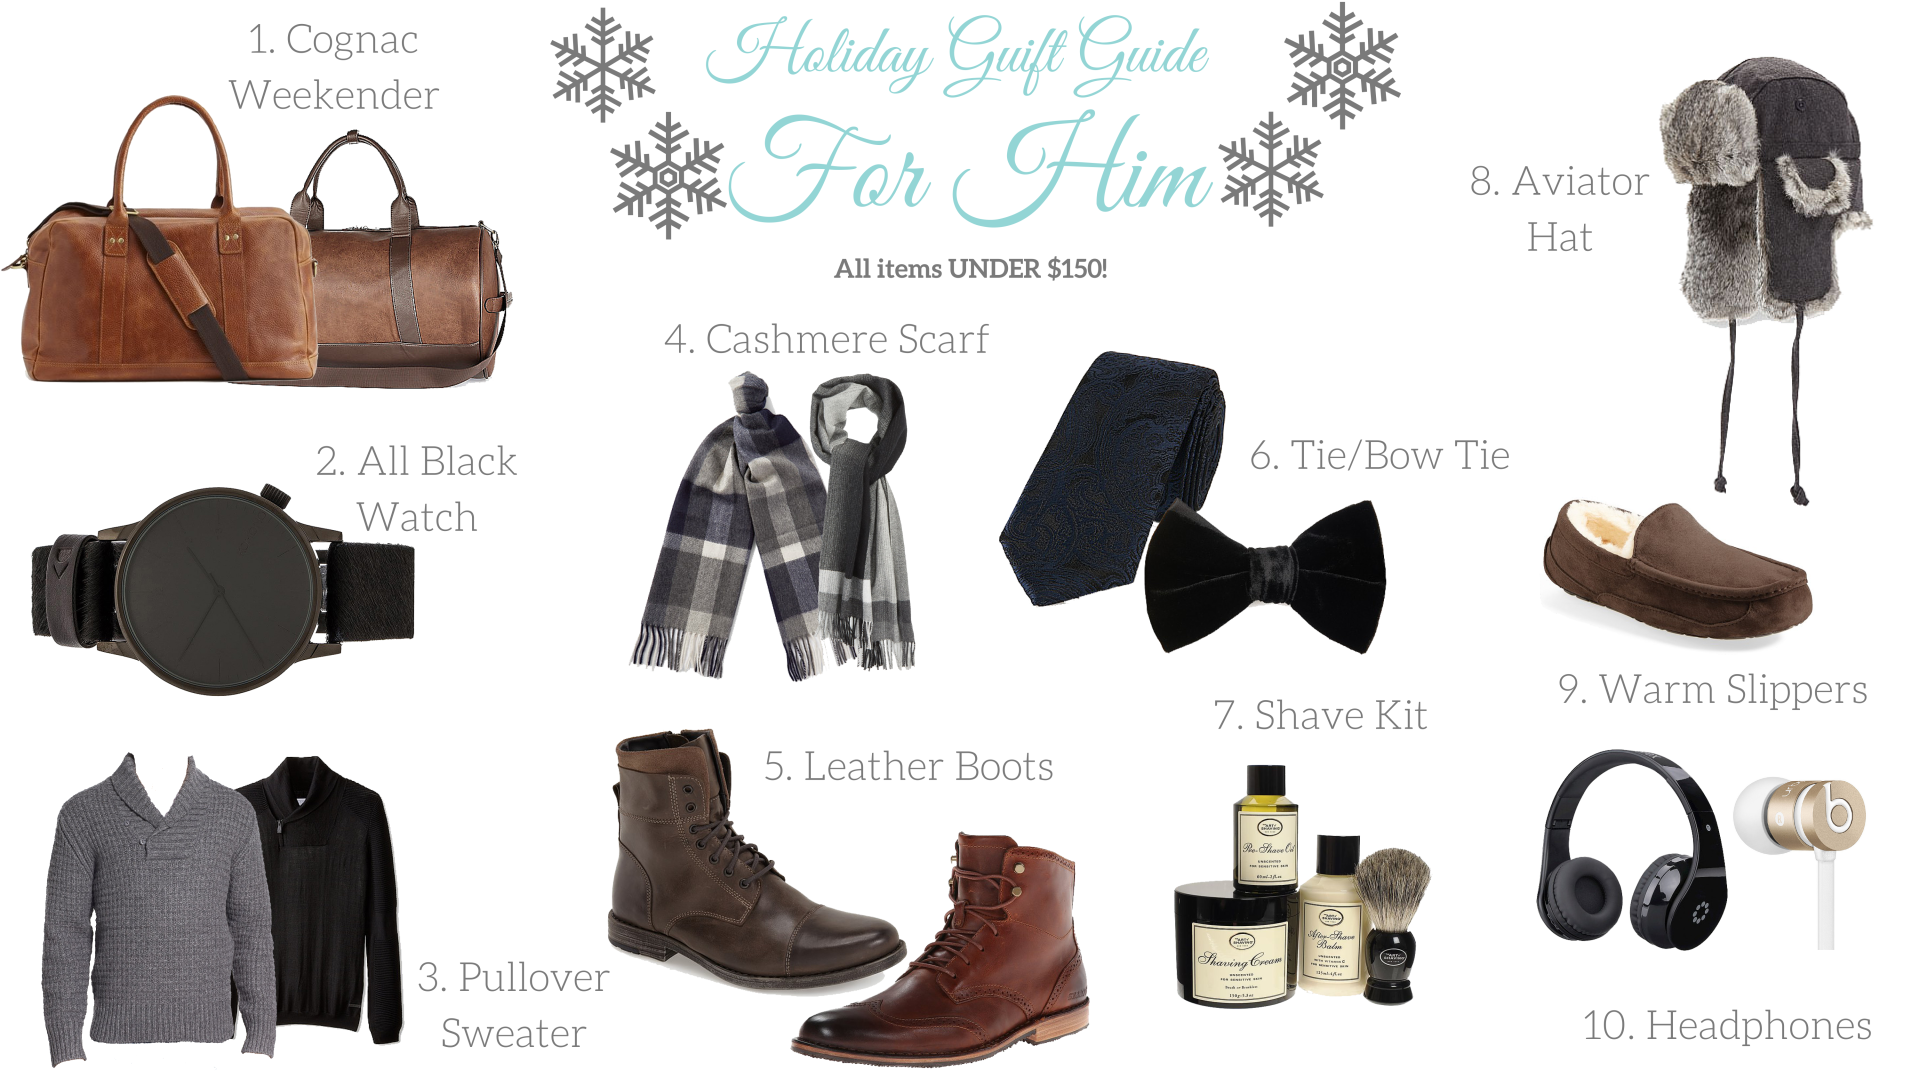 OverExposed_Holiday_Gift_Guide_2015_Man